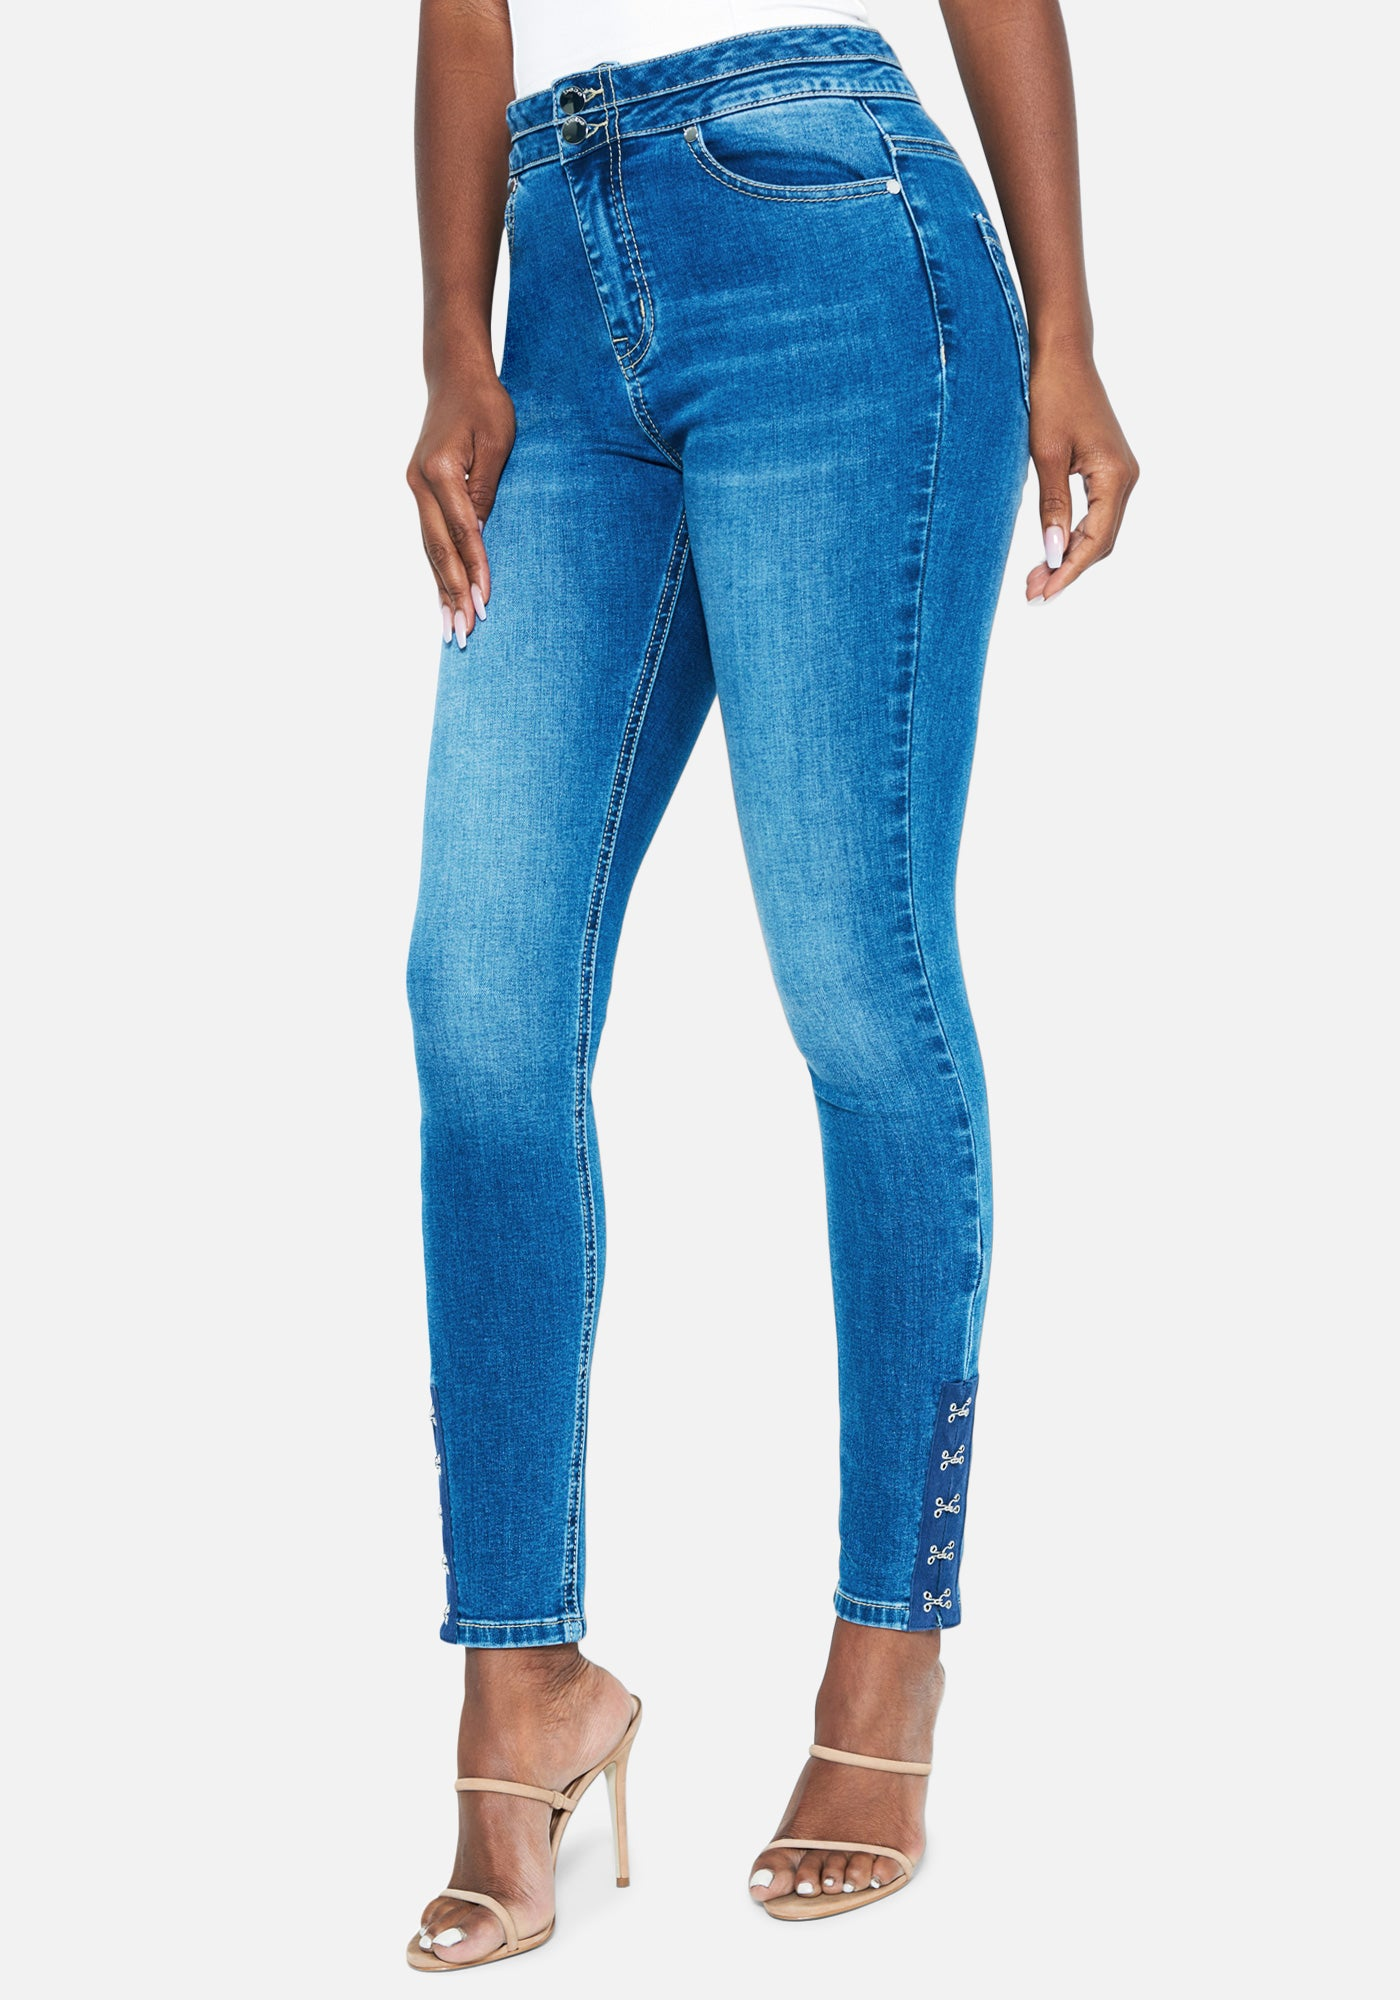 Bebe Women's Hook & Eye Detail Skinny Jeans, Size 25 in MED INDIGO WASH Cotton/Spandex